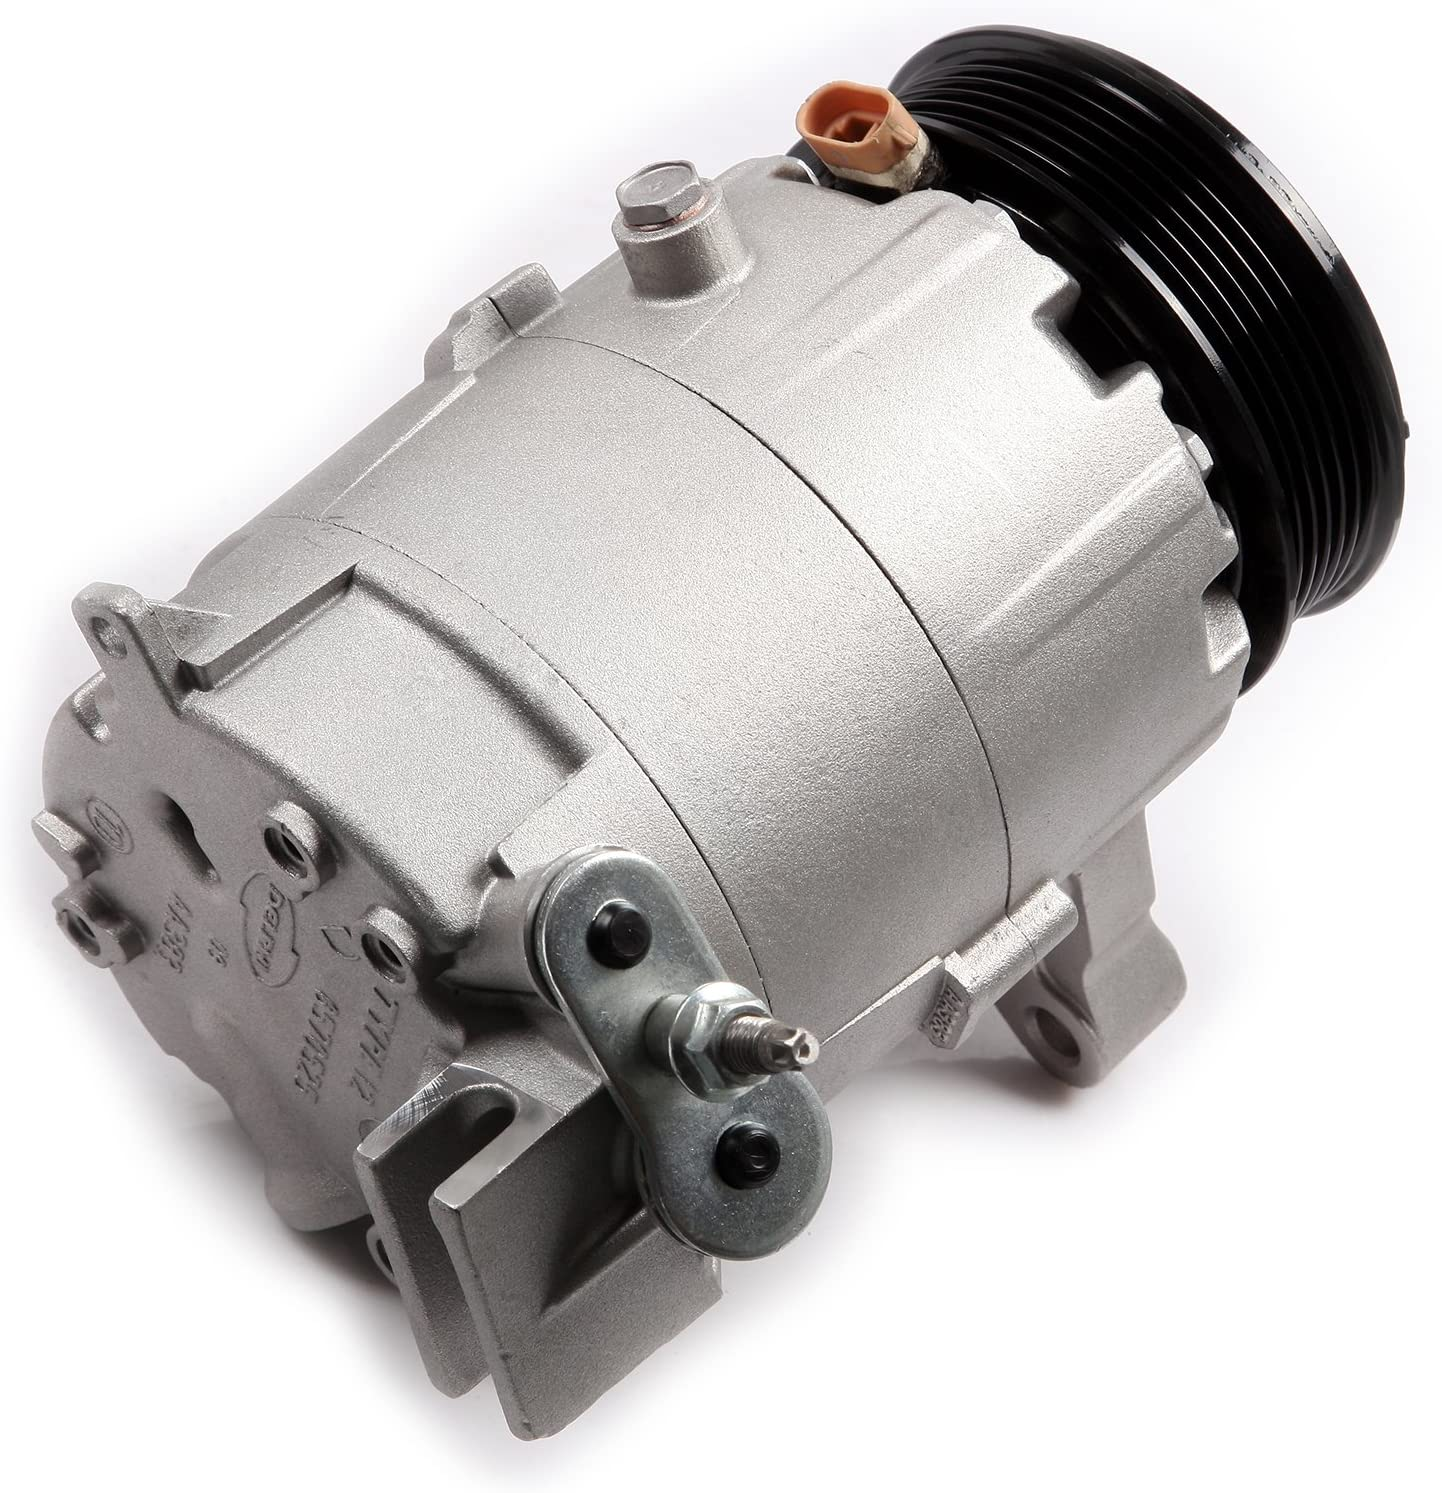 GDSMOTU Air Fixed price for sale Conditioning Compressor and 21471 free shipping Assembly Clutch CO